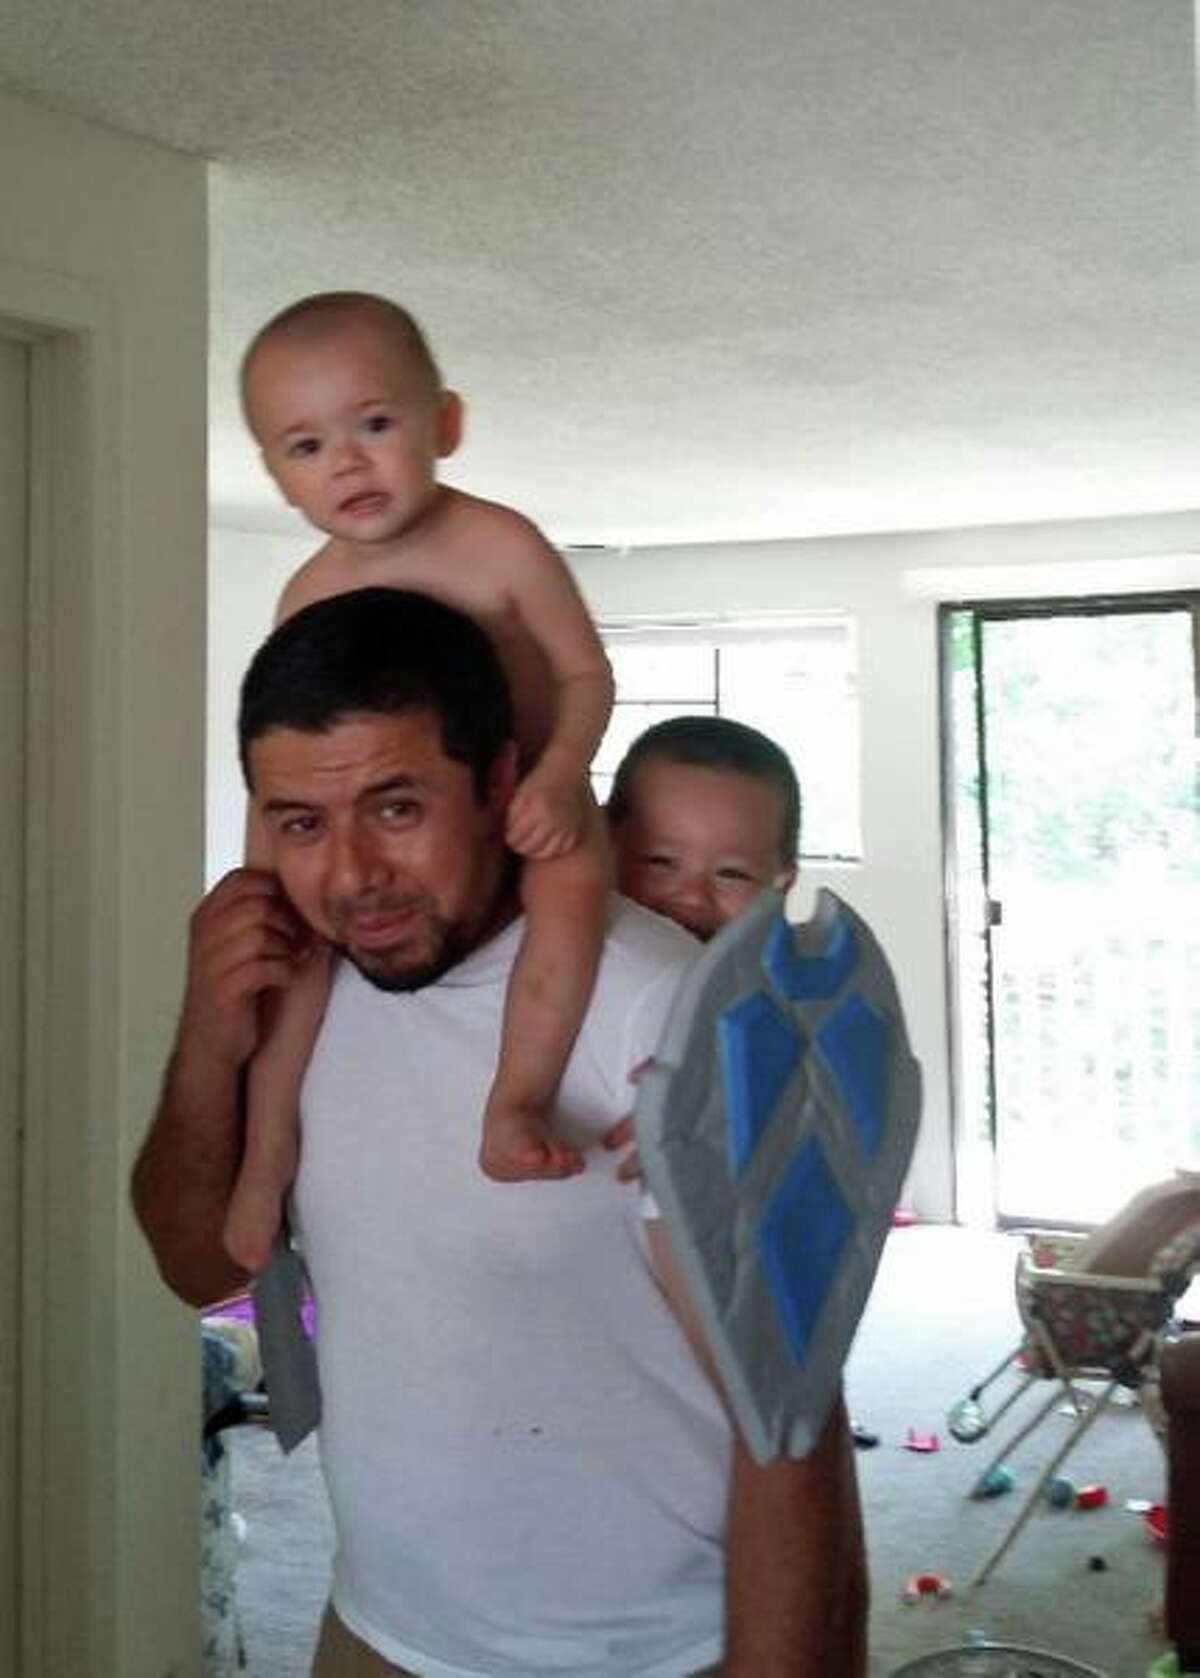 Bakhodir Madjitov smiles with two of his sons in 2016. Madjitov, a Connecticut resident, has been detained by U.S. Immigration and Customs Enforcement in 2017.